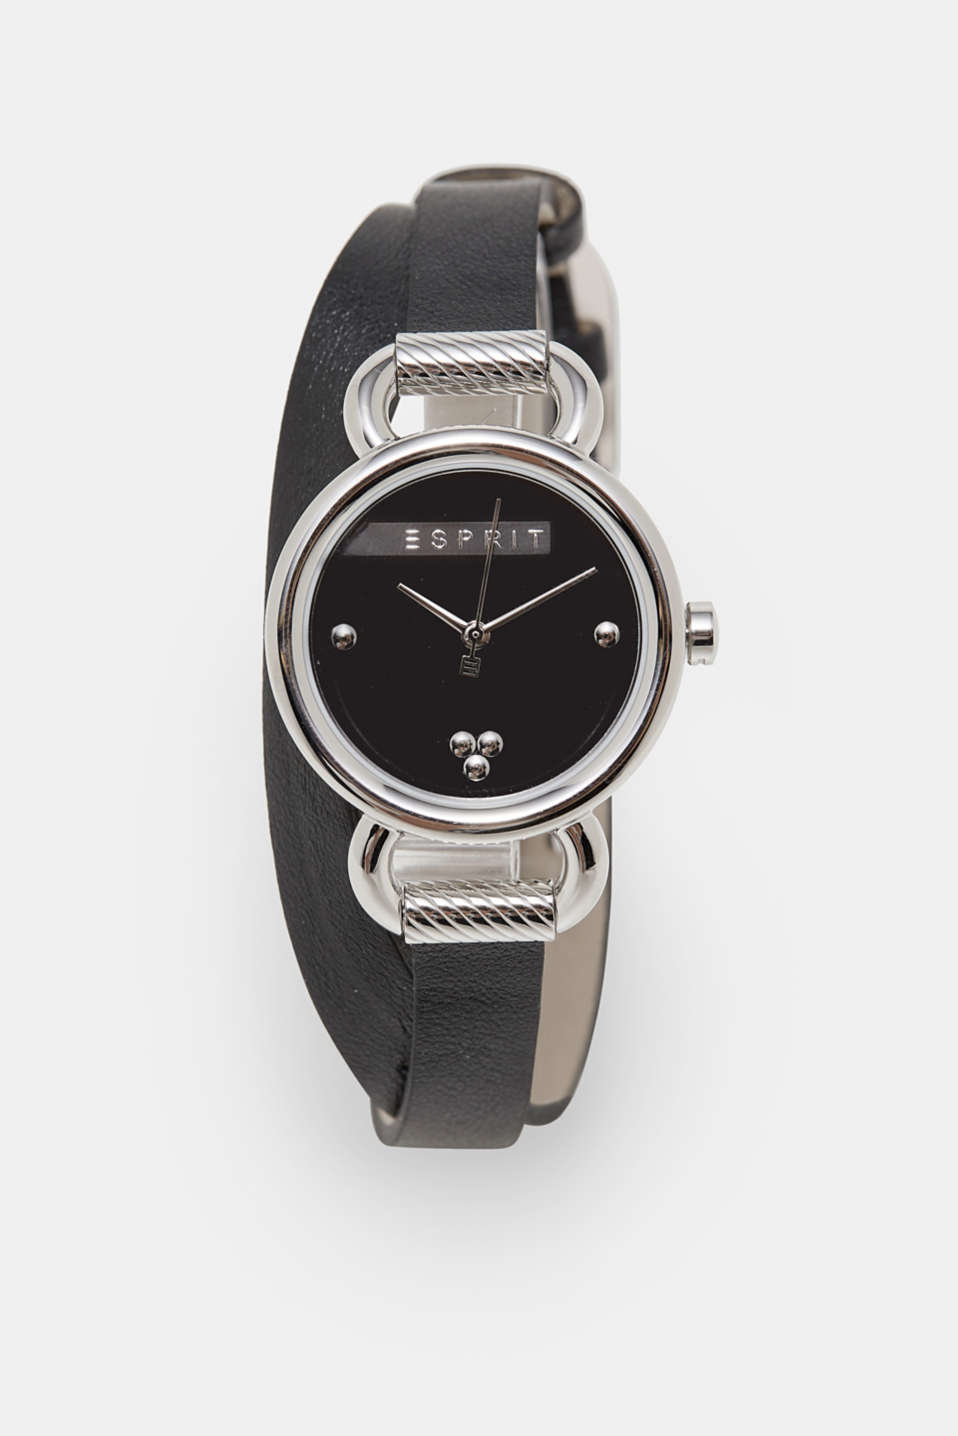 Esprit - Stainless steel watch, leather wrap-around